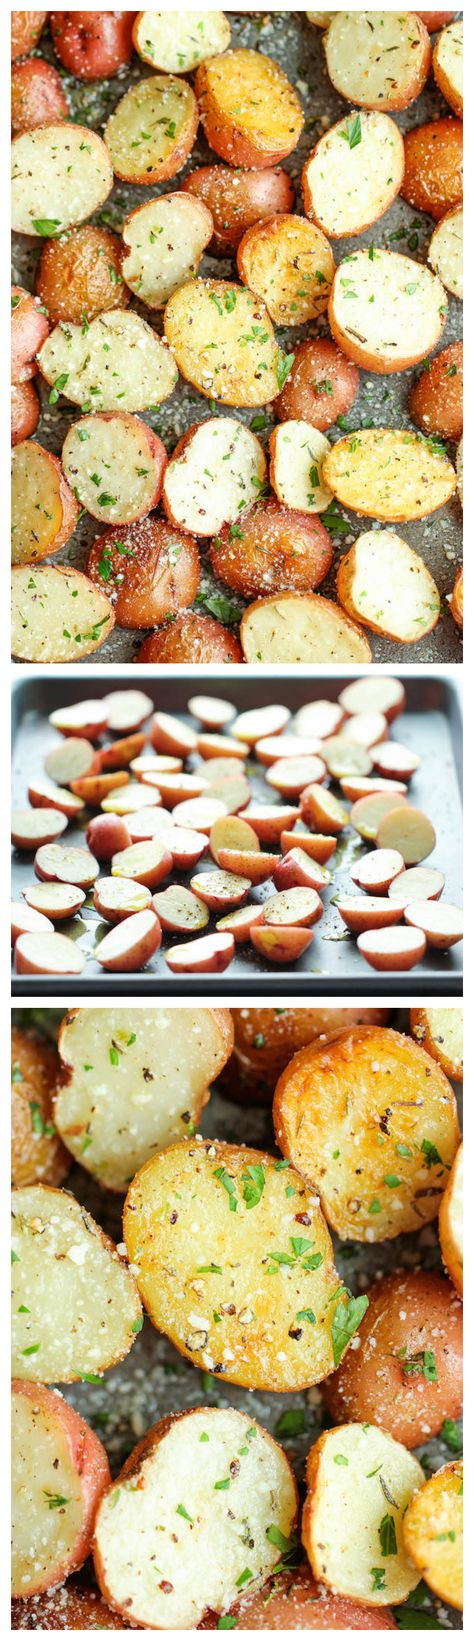 ❤️Garlic Parmesan Roasted Potatoes - These buttery garlic potatoes are tossed with Parmesan goodness and roasted to crisp-tender perfection!❤️